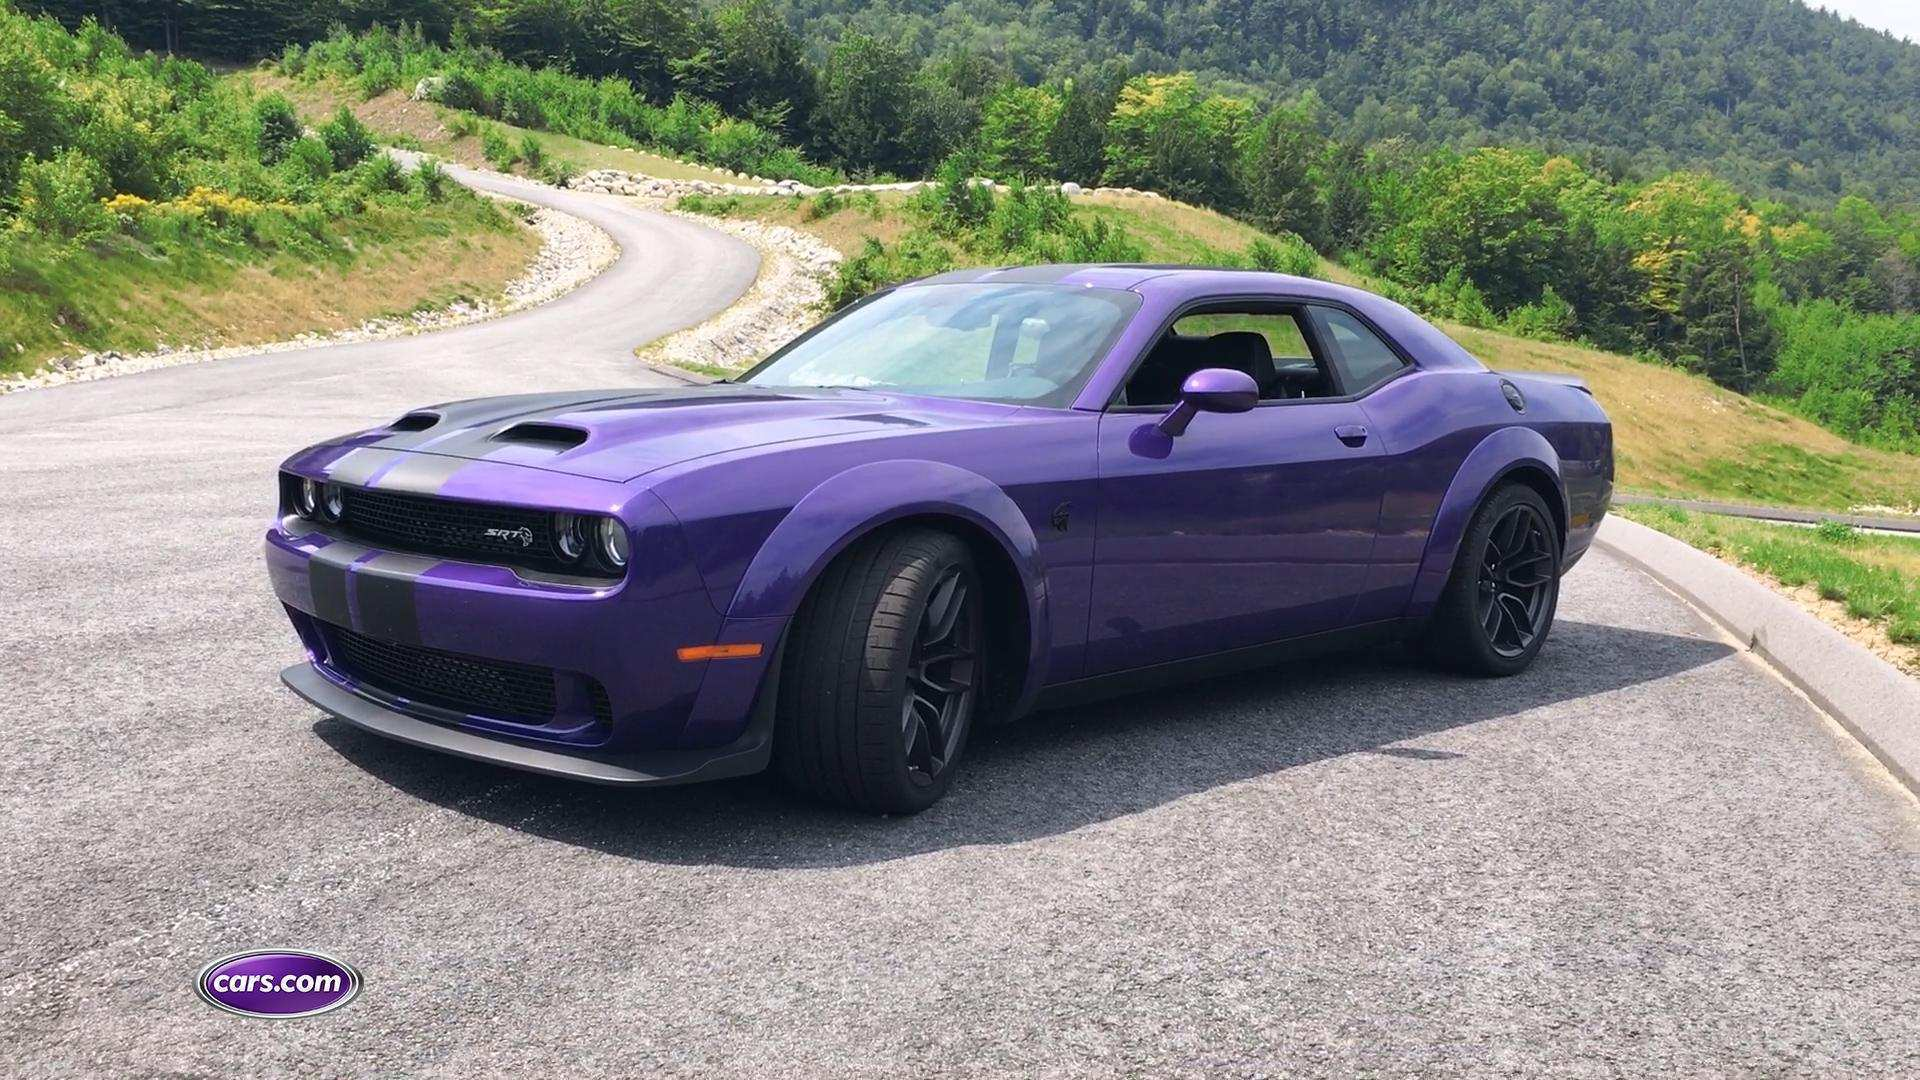 19 Great 2019 Dodge Hellcat Widebody Prices by 2019 Dodge Hellcat Widebody